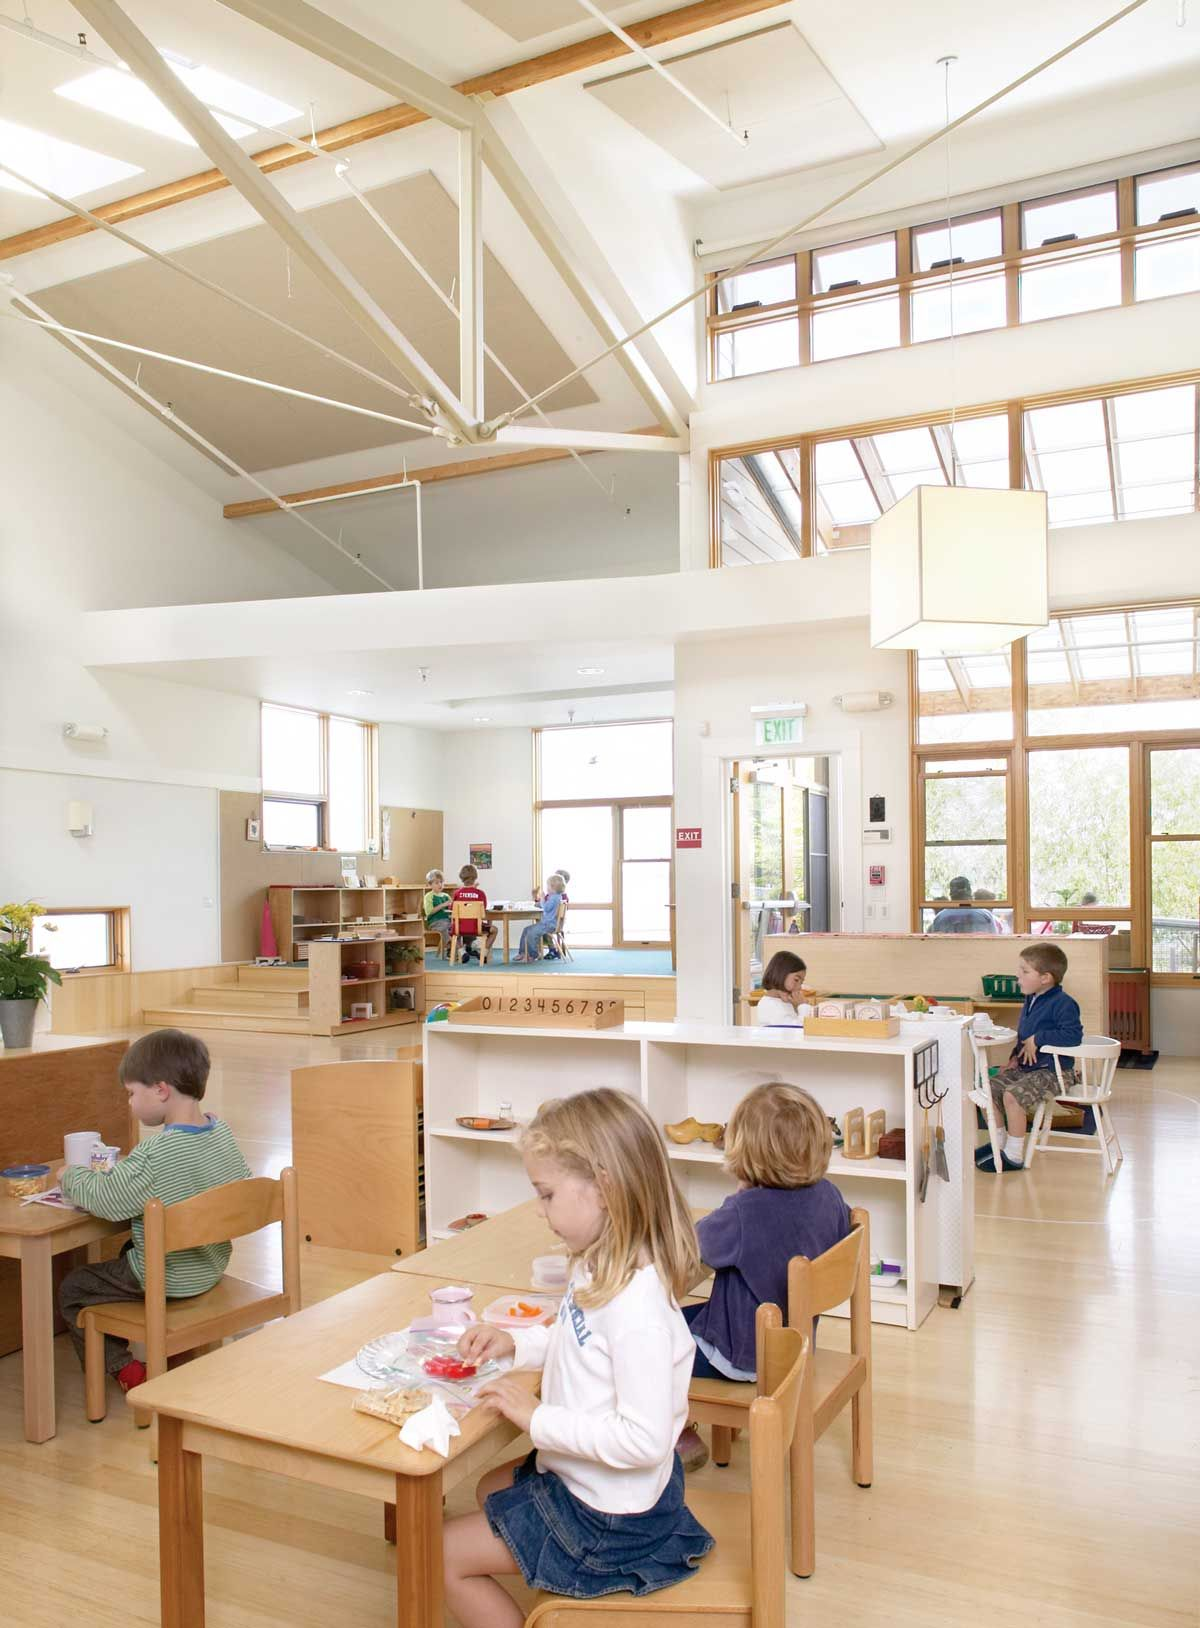 marin montessori school | pfau long architecture | + schools